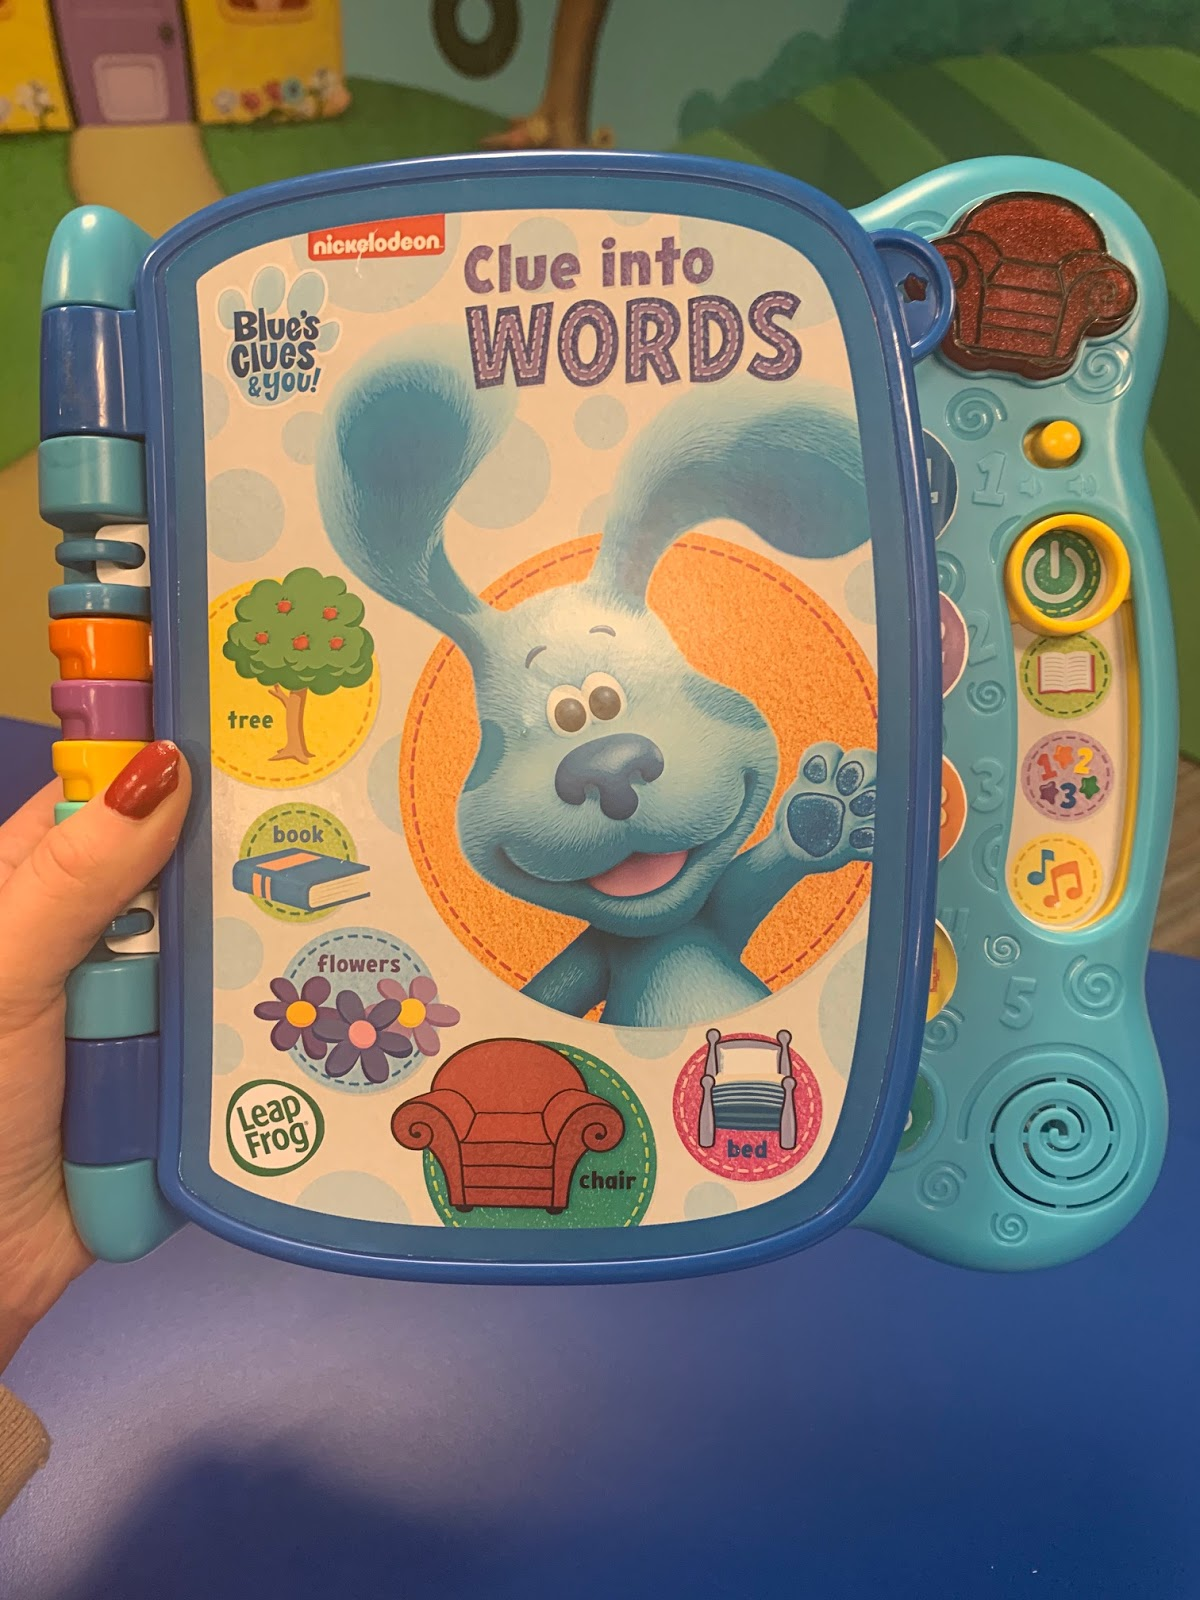 Blue's Clues Words : blue's, clues, words, NickALive!:, LeapFrog, Announces, 'Blue's, Clues, You!', Joining, Expanded, Infant, Preschool, Learning, Collection